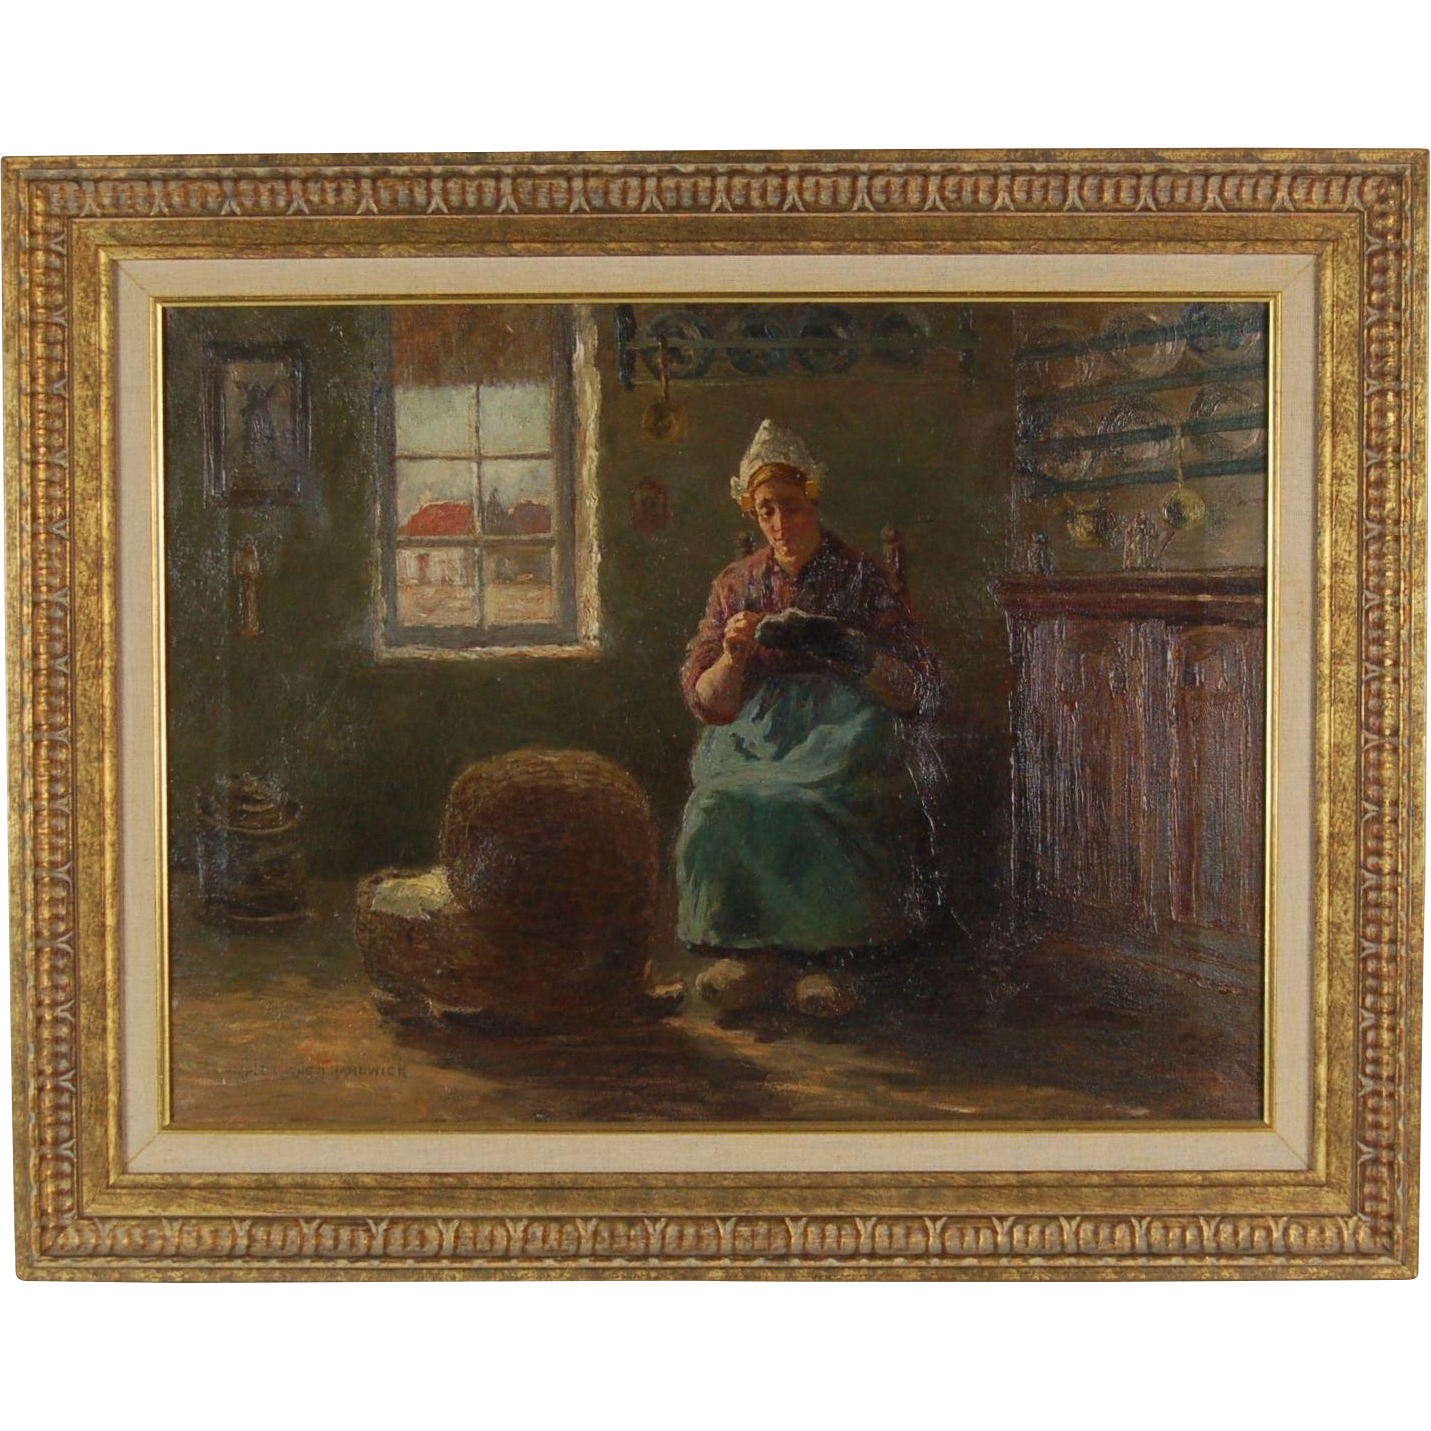 Melbourne Hardwick painting Dutch Mother Sewing while tending to Baby in Crib